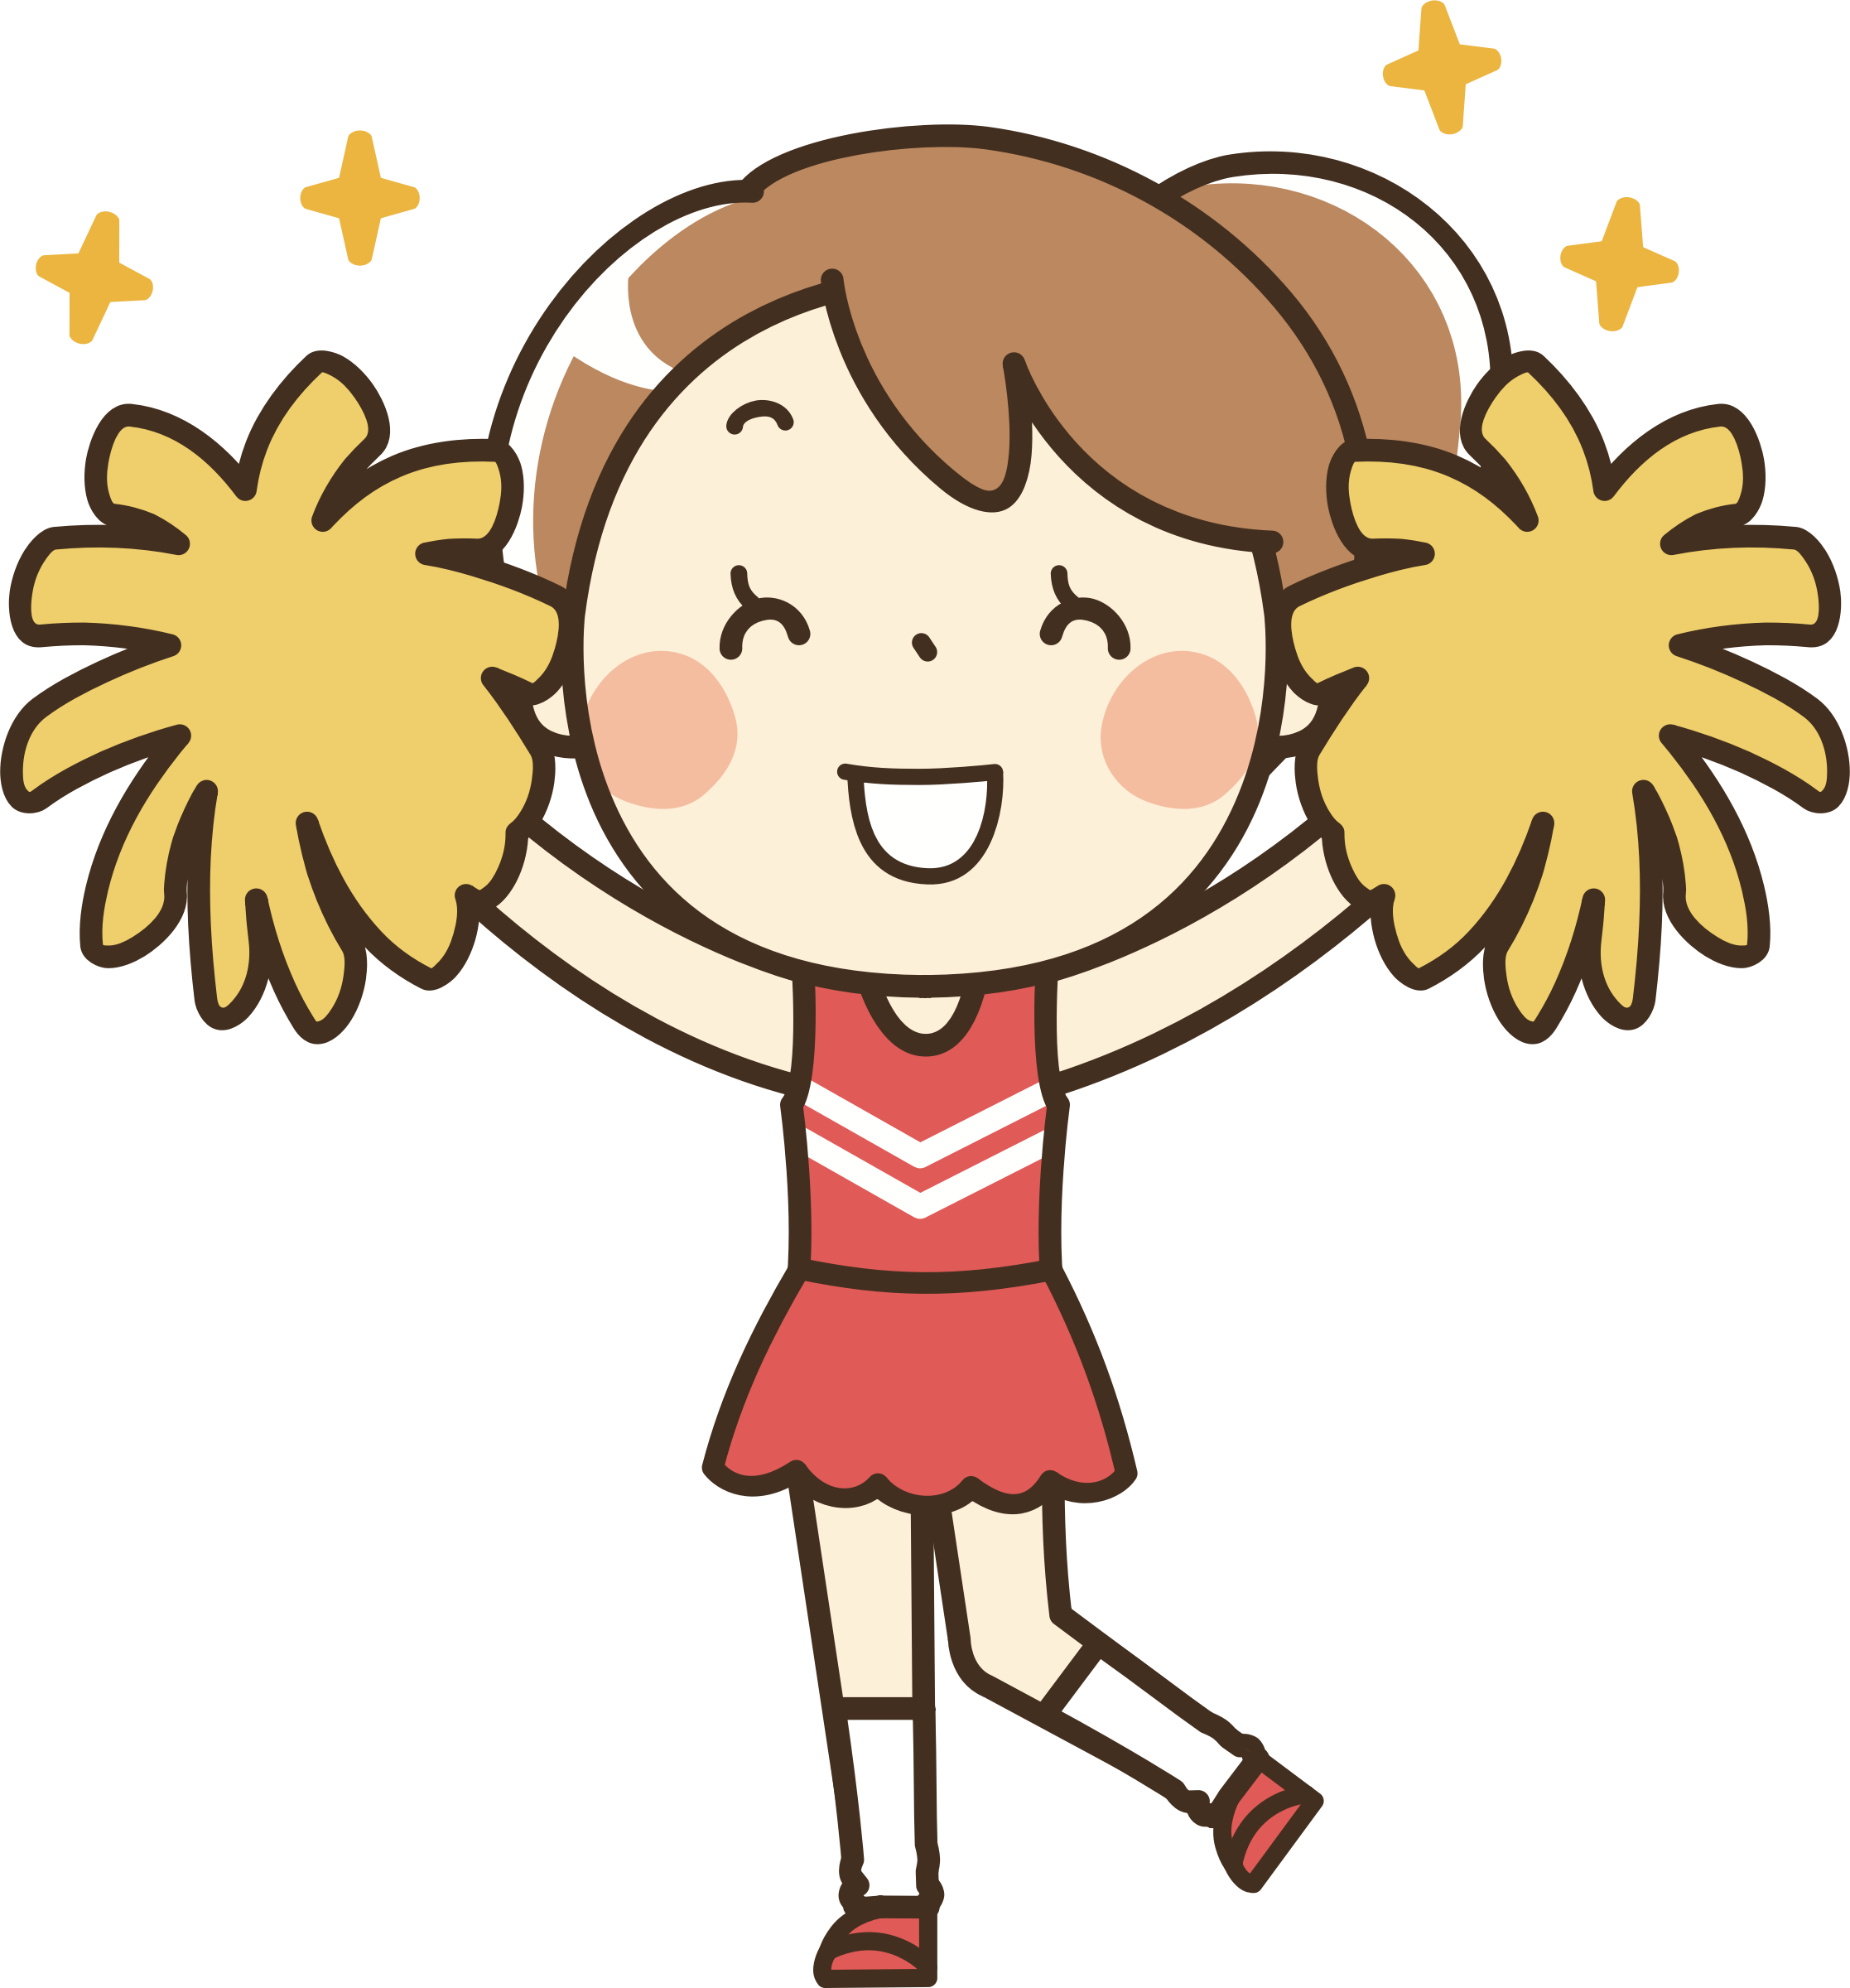 Cheer clipart clipart vector black and white library Clipart - Clip Art Cheerleader , Transparent Cartoon - Jing.fm vector black and white library